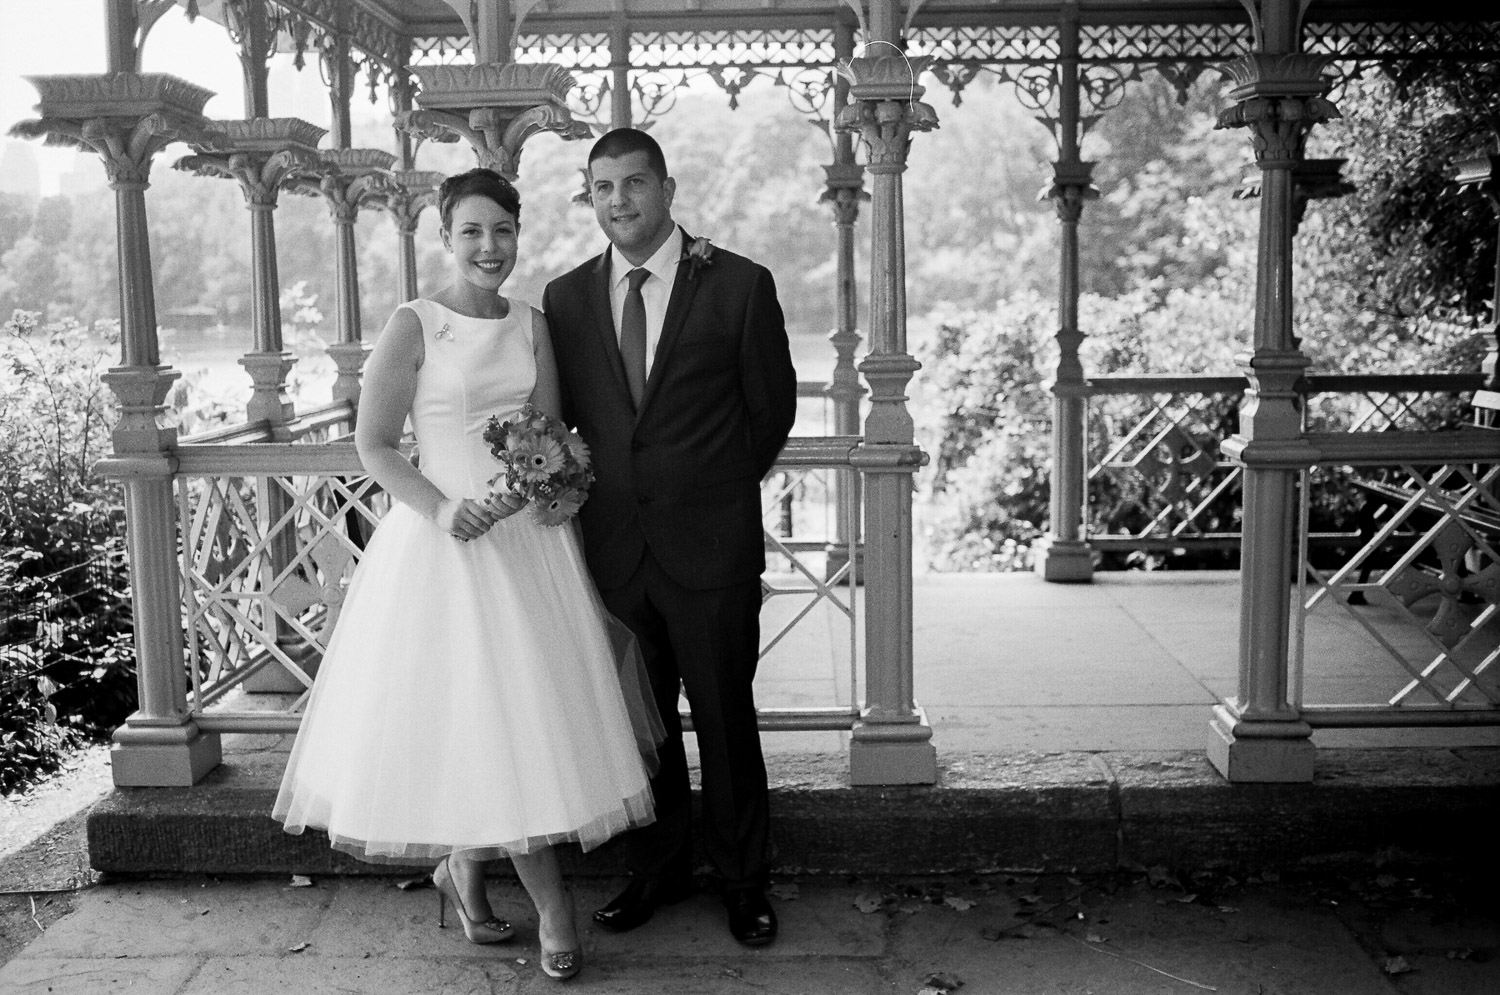 nyc central park mini wedding BNW ladies pavilion photo by wendy g photography